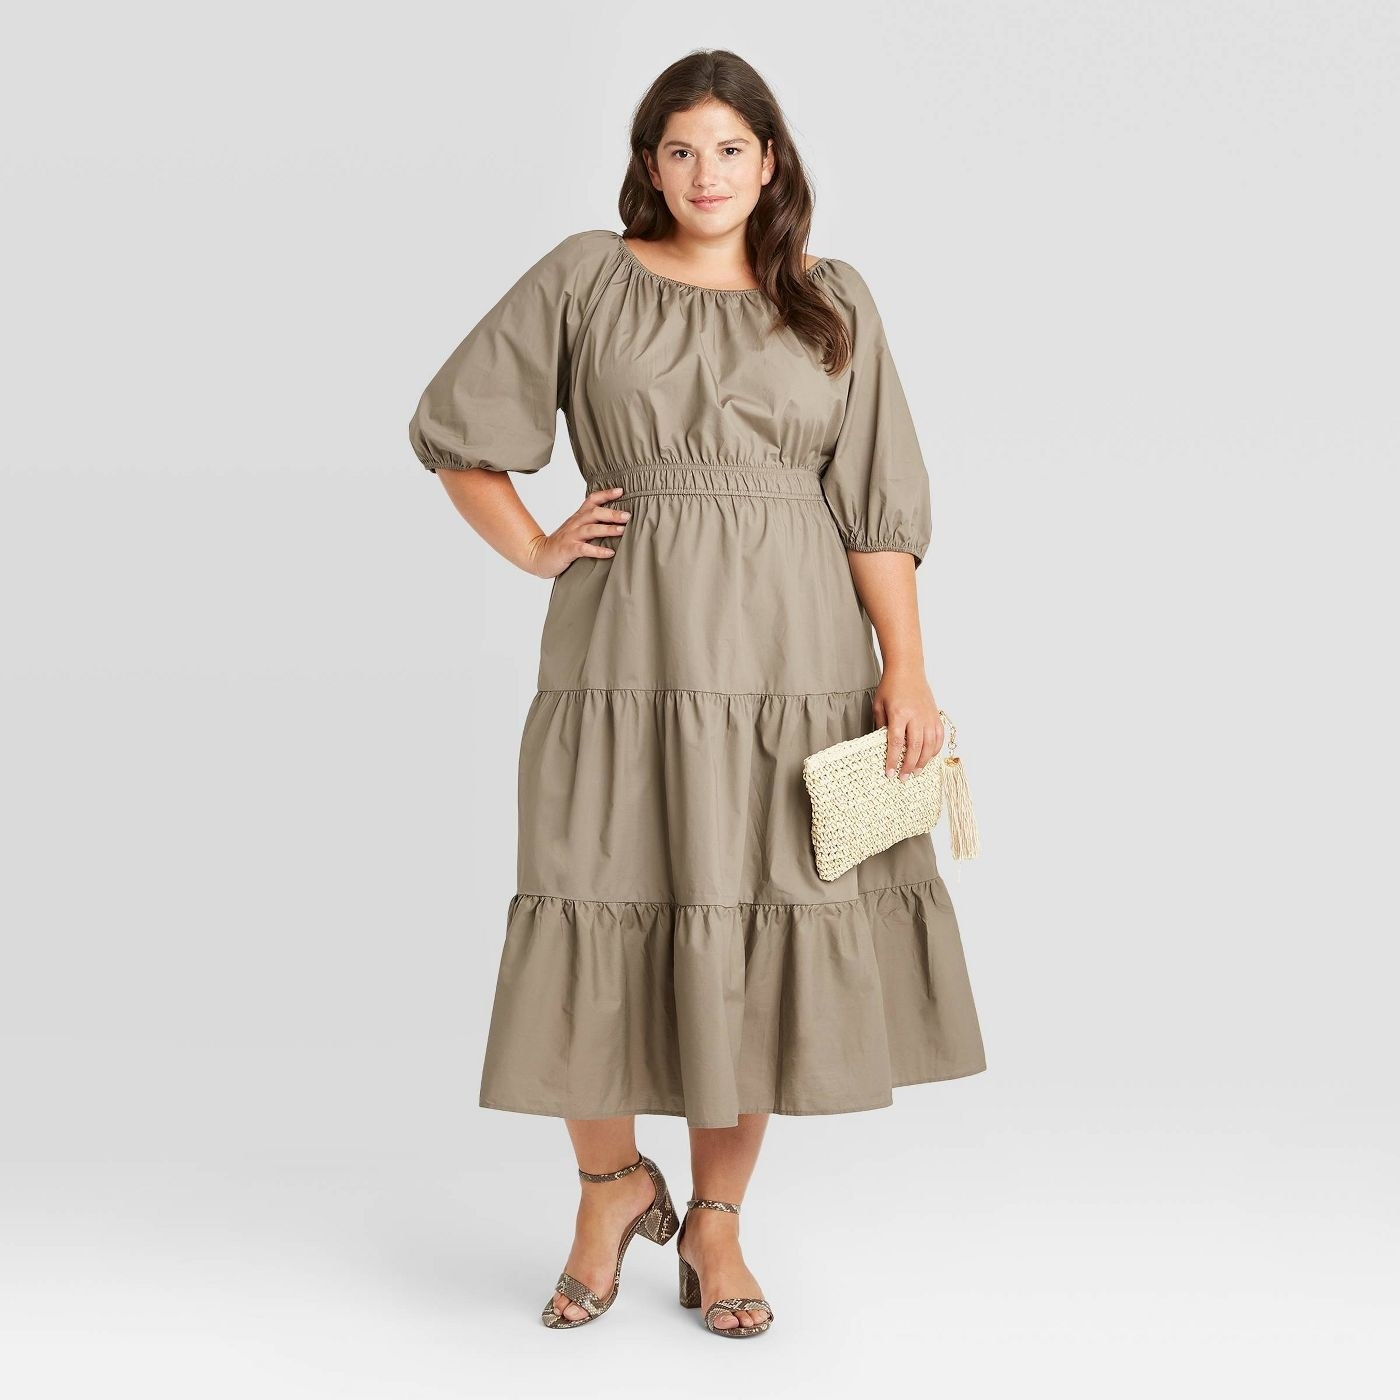 Model in tiered puff sleeve dress